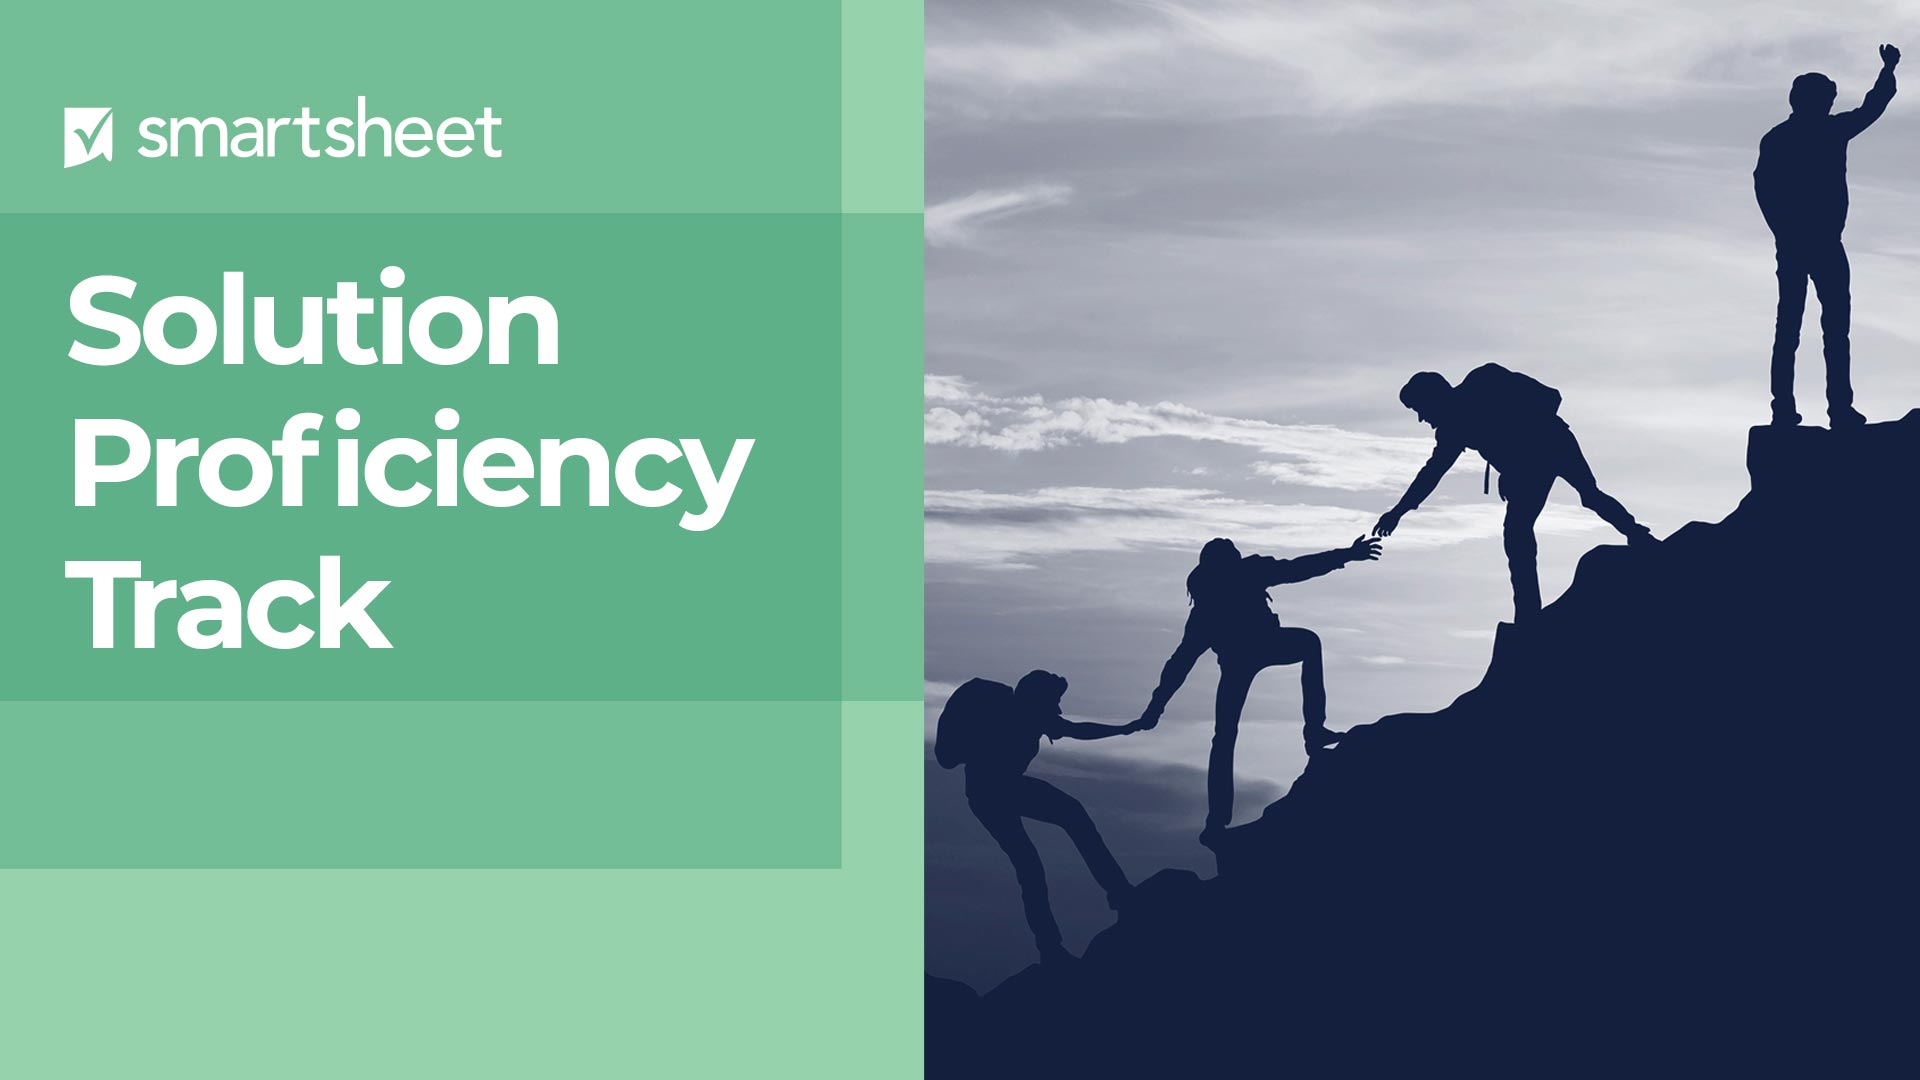 Instructions for Navigating the Solution Proficiency Track